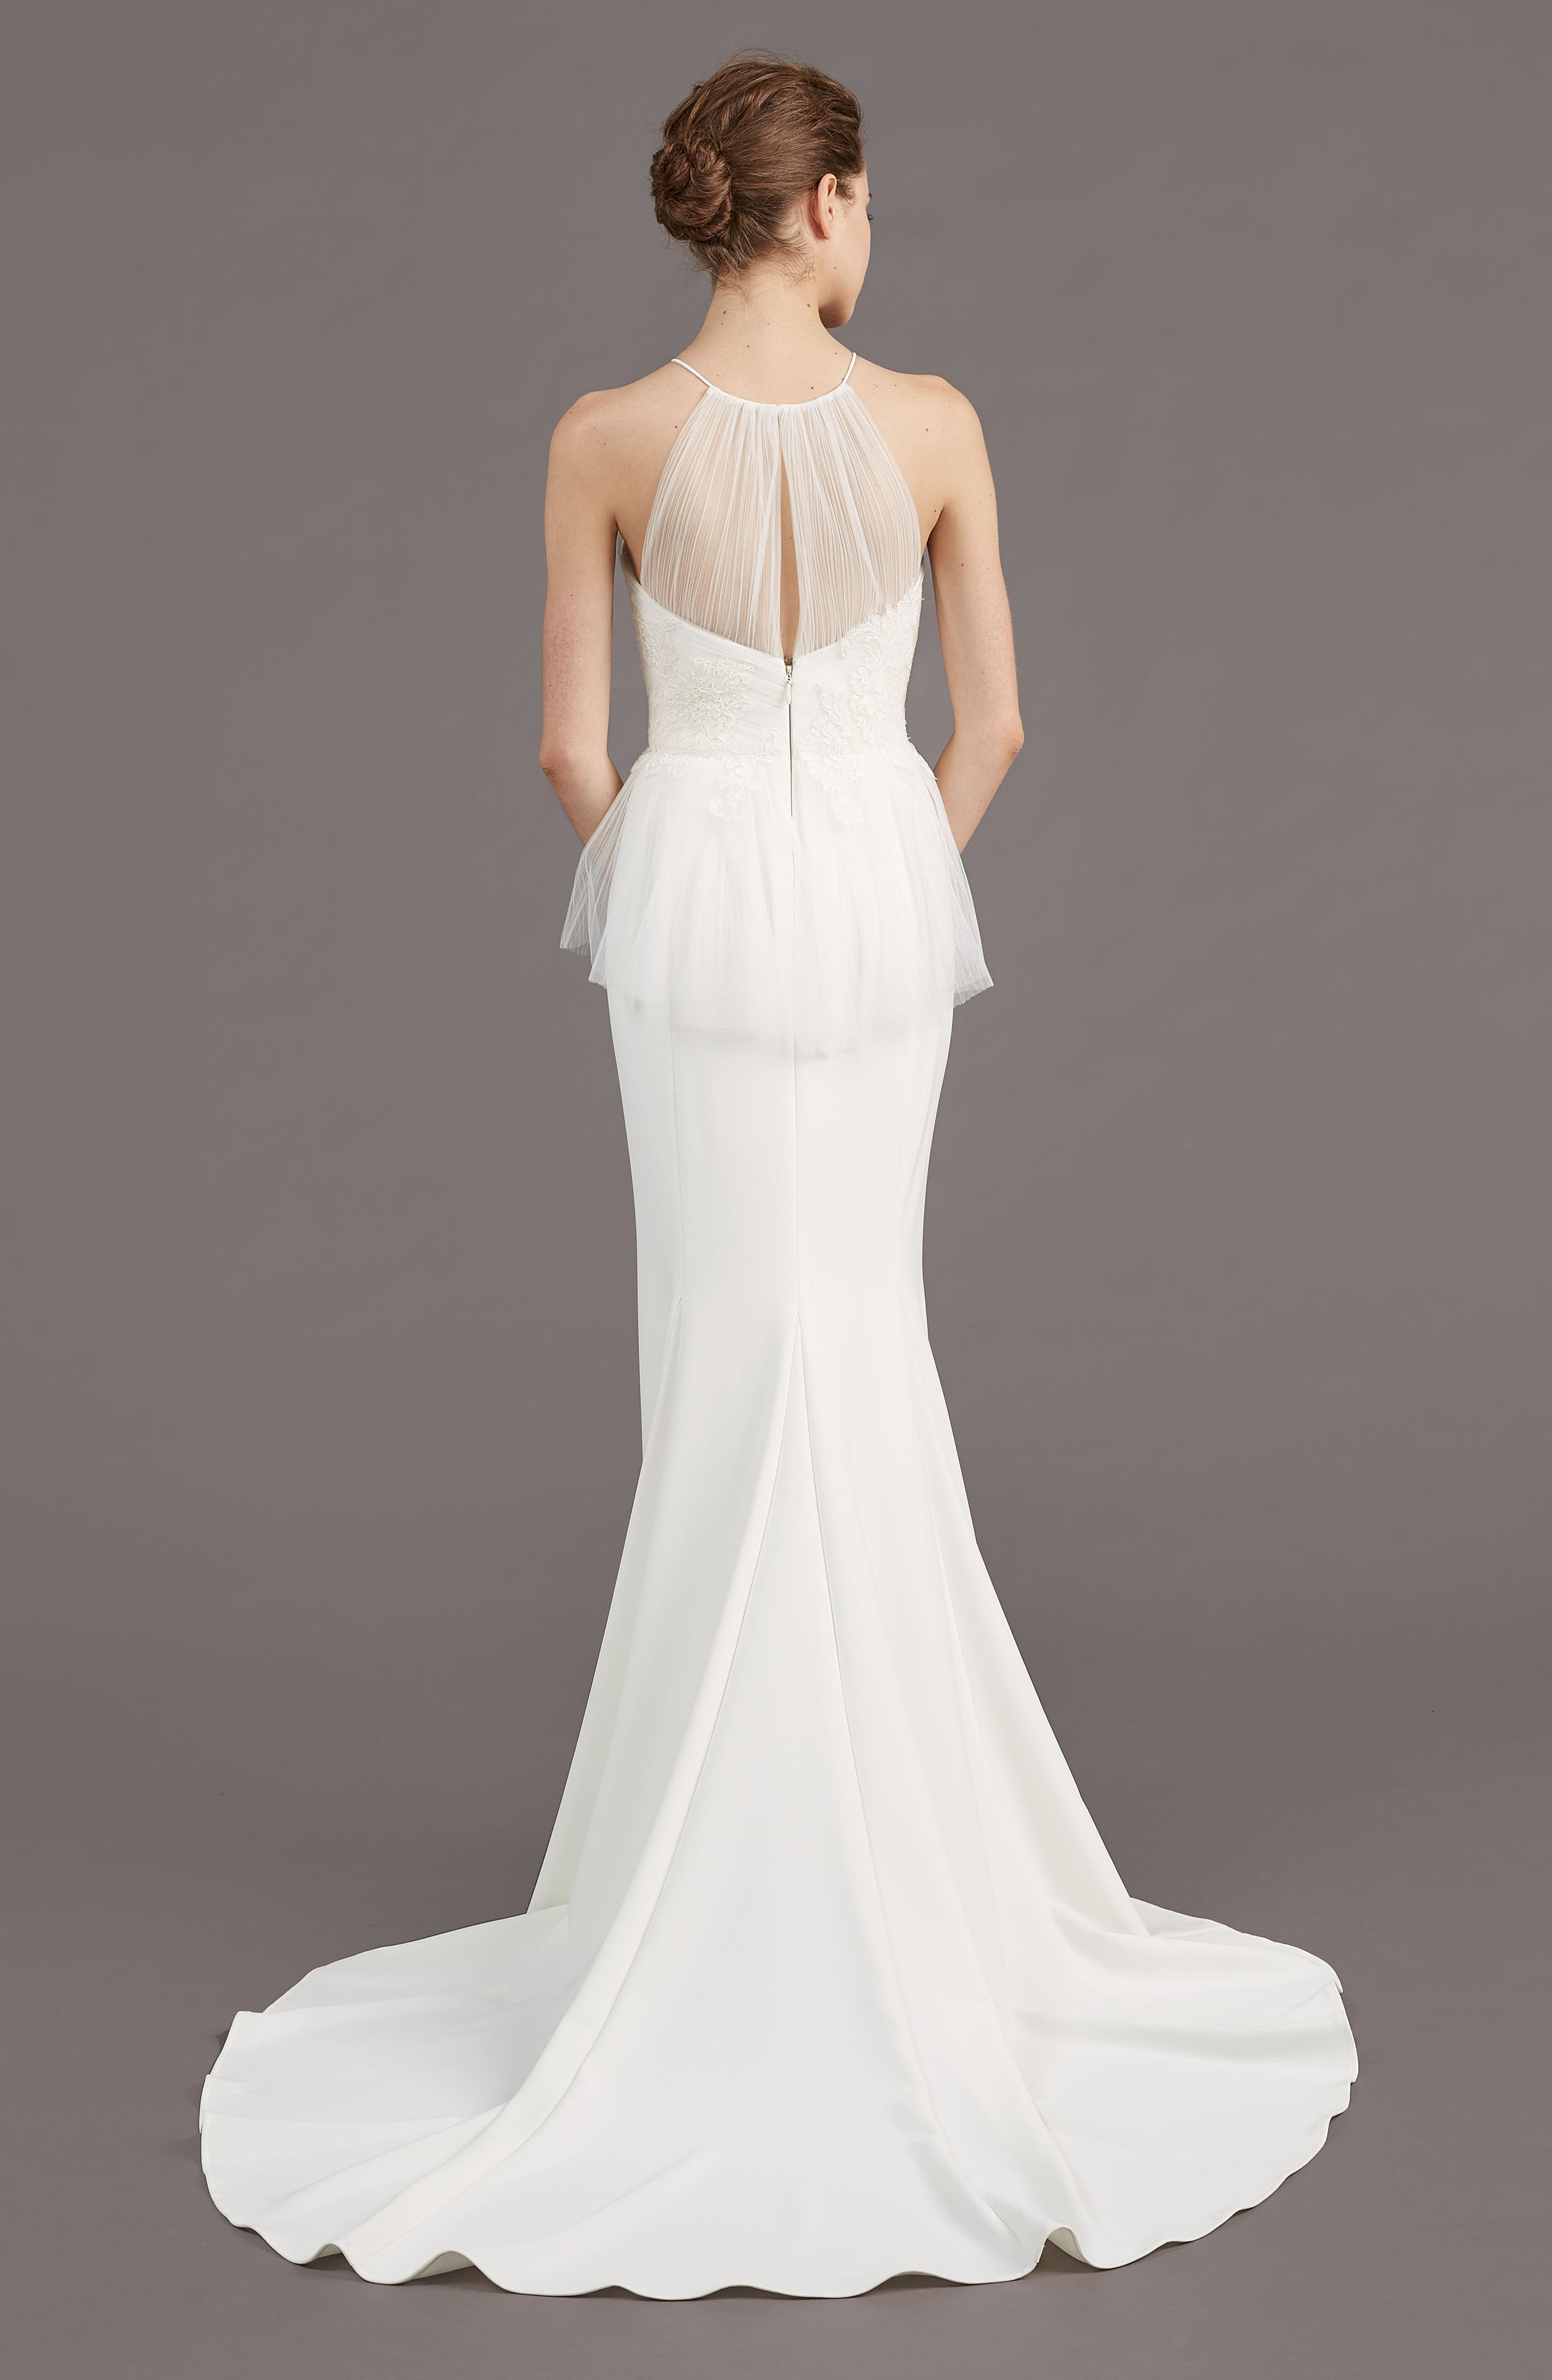 Ruby Crepe Peplum Gown,                             Alternate thumbnail 2, color,                             IVORY